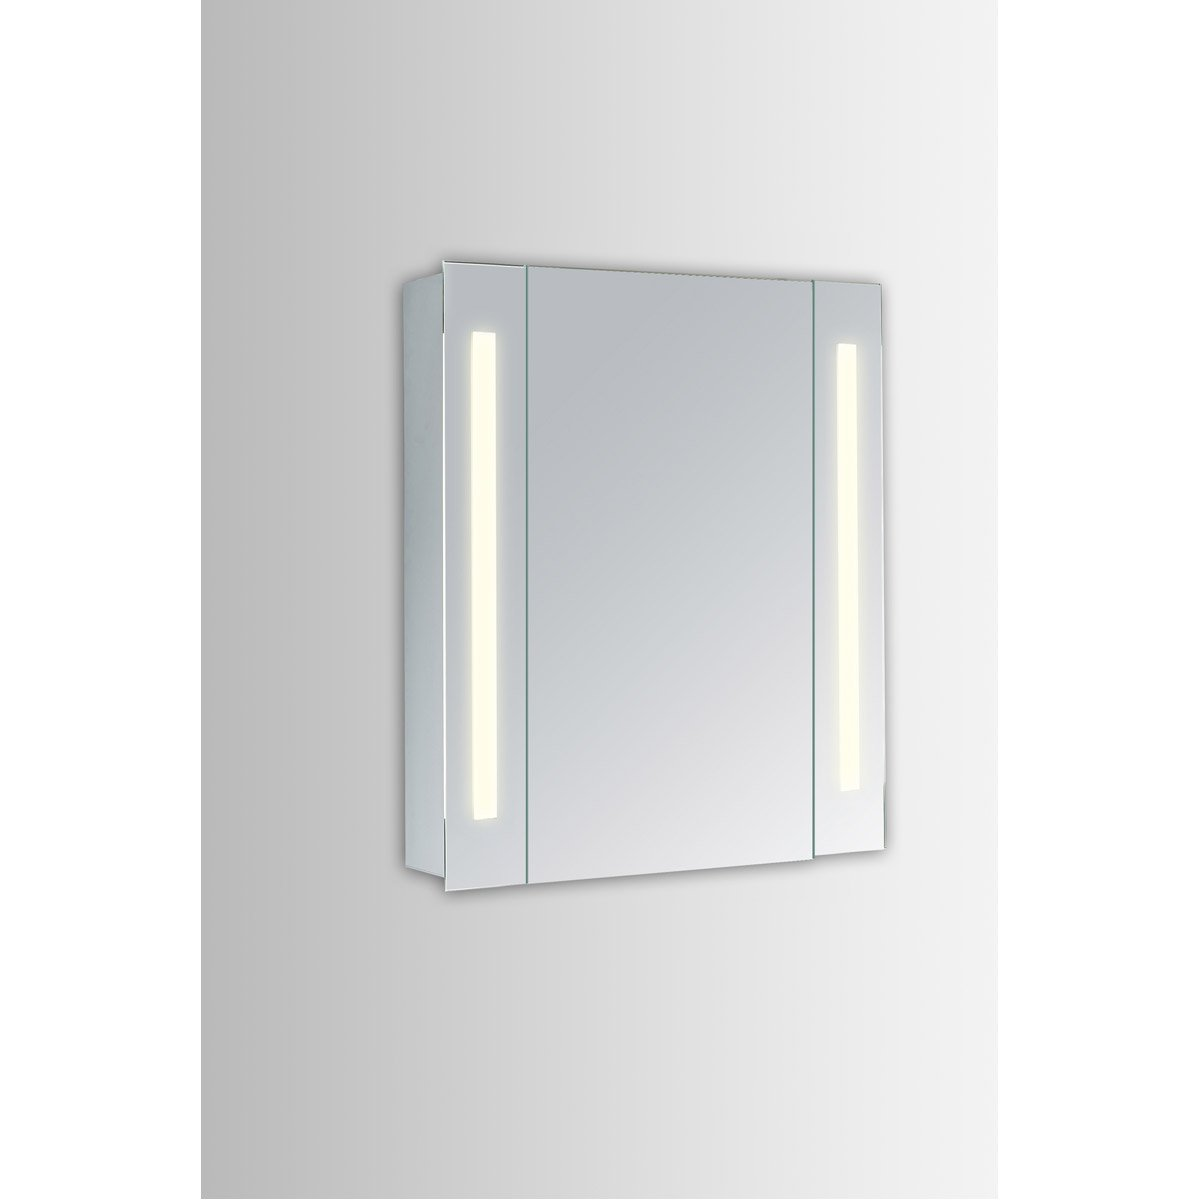 Elixir 39.5 X 23.5 Led Mirror Cabinet - Silver Finish (Mre8011) Led Cabinet